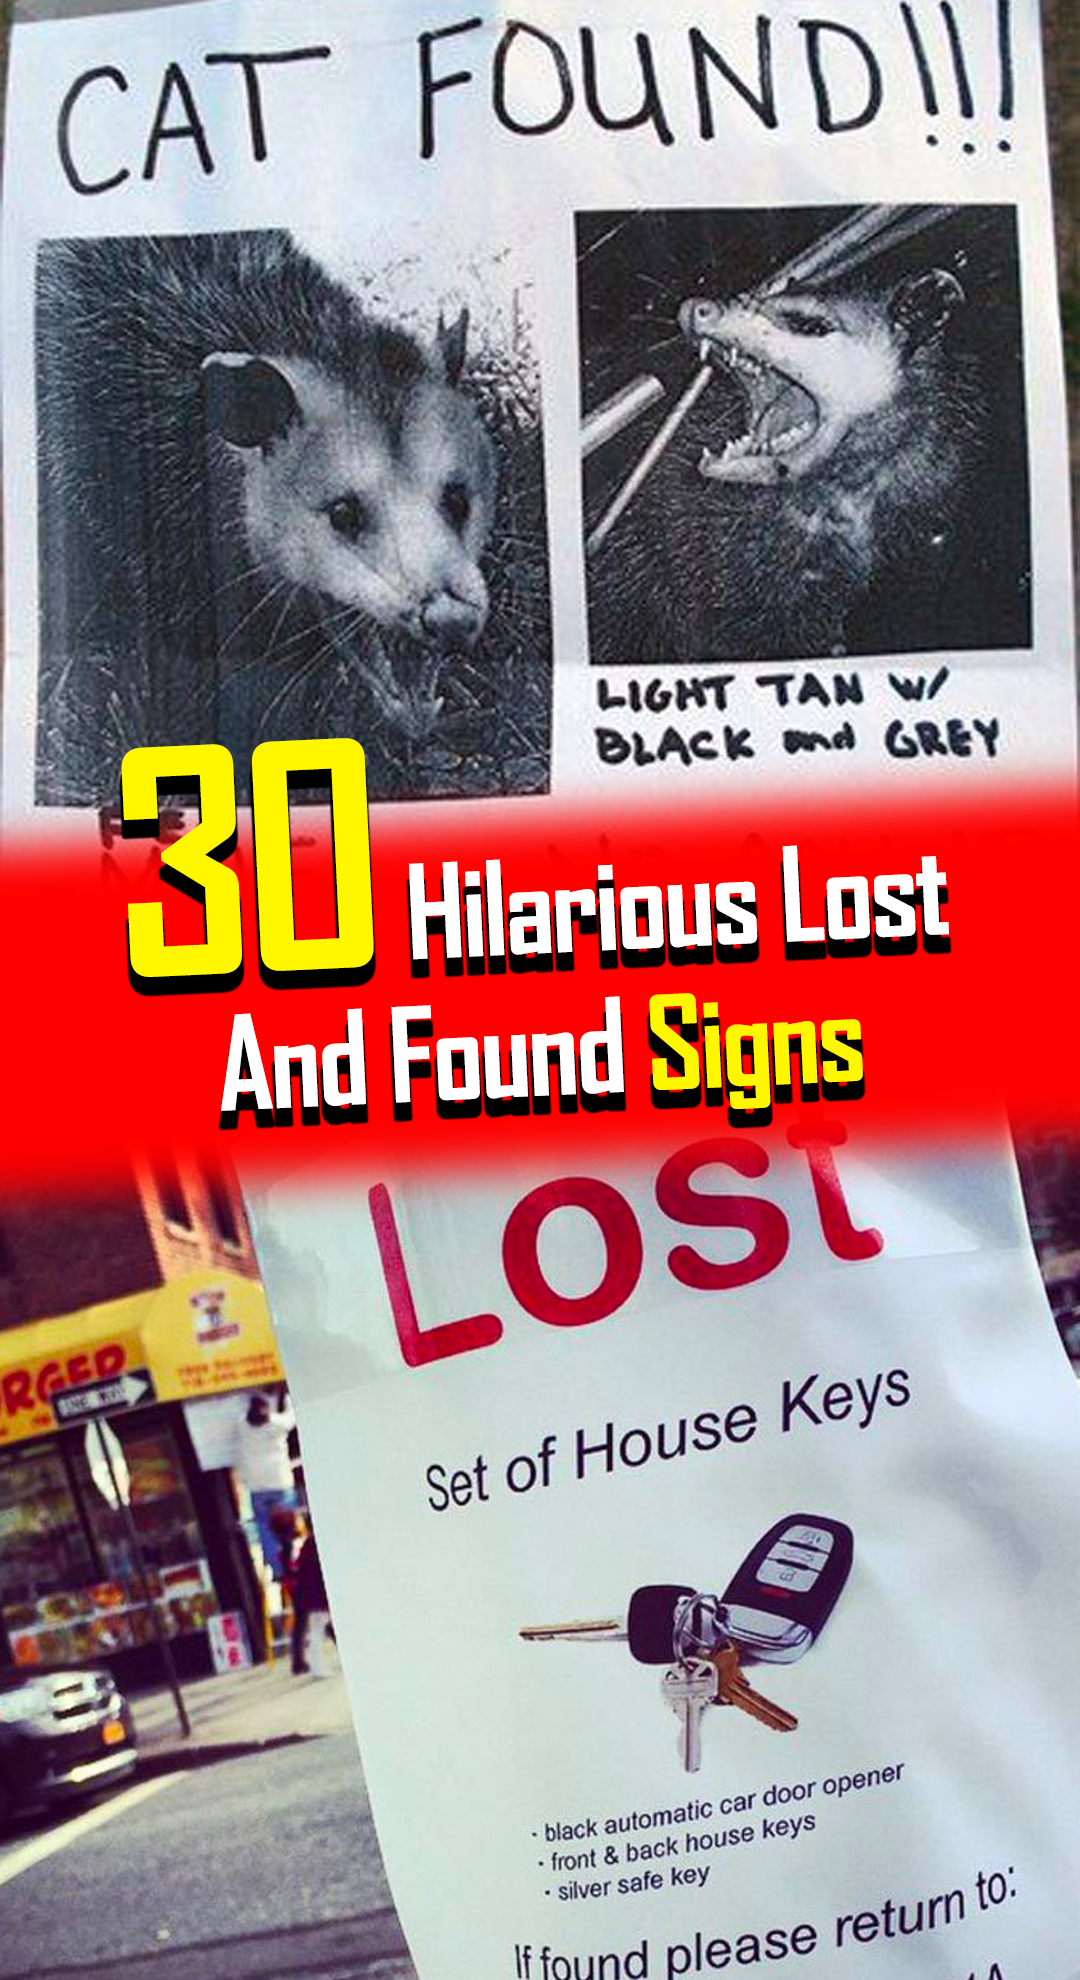 30 Hilarious Lost And Found Signs In 2020 Funny Spongebob Memes Haha Funny Funny Signs